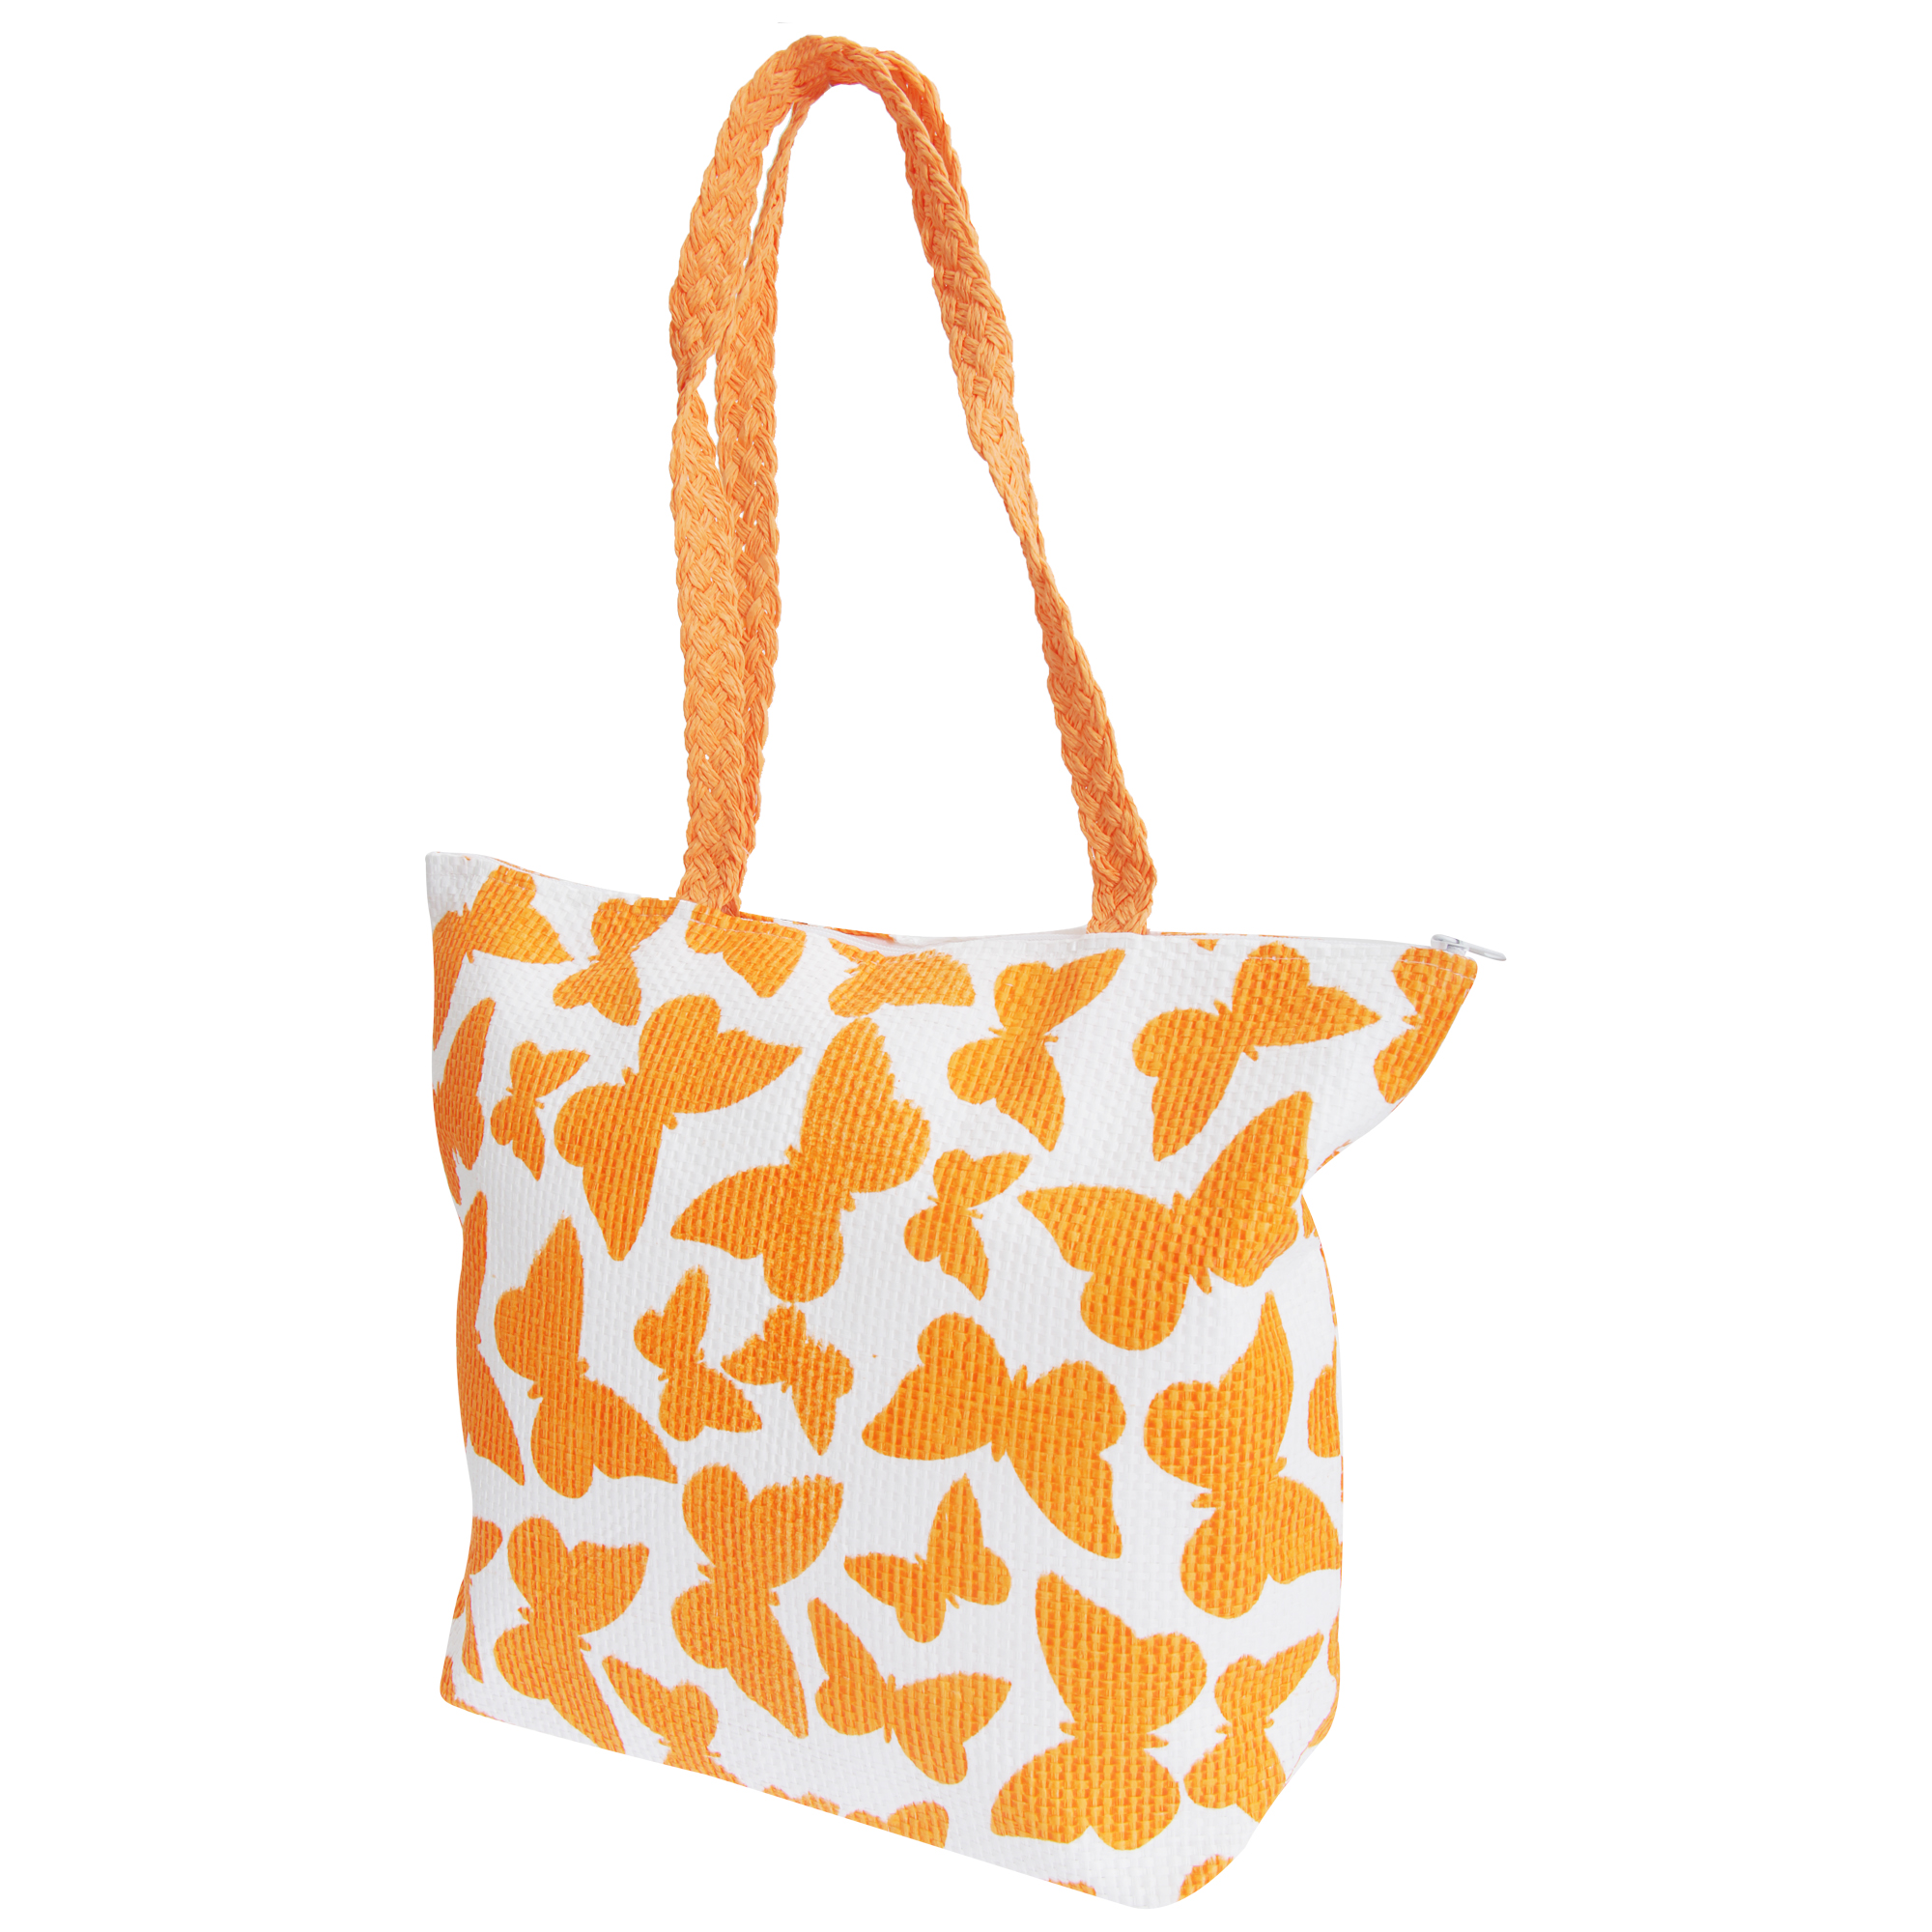 FLOSO Womens/Ladies Straw Woven Butterfly Print Top Handle Handbag (One Size) (White/Orange)